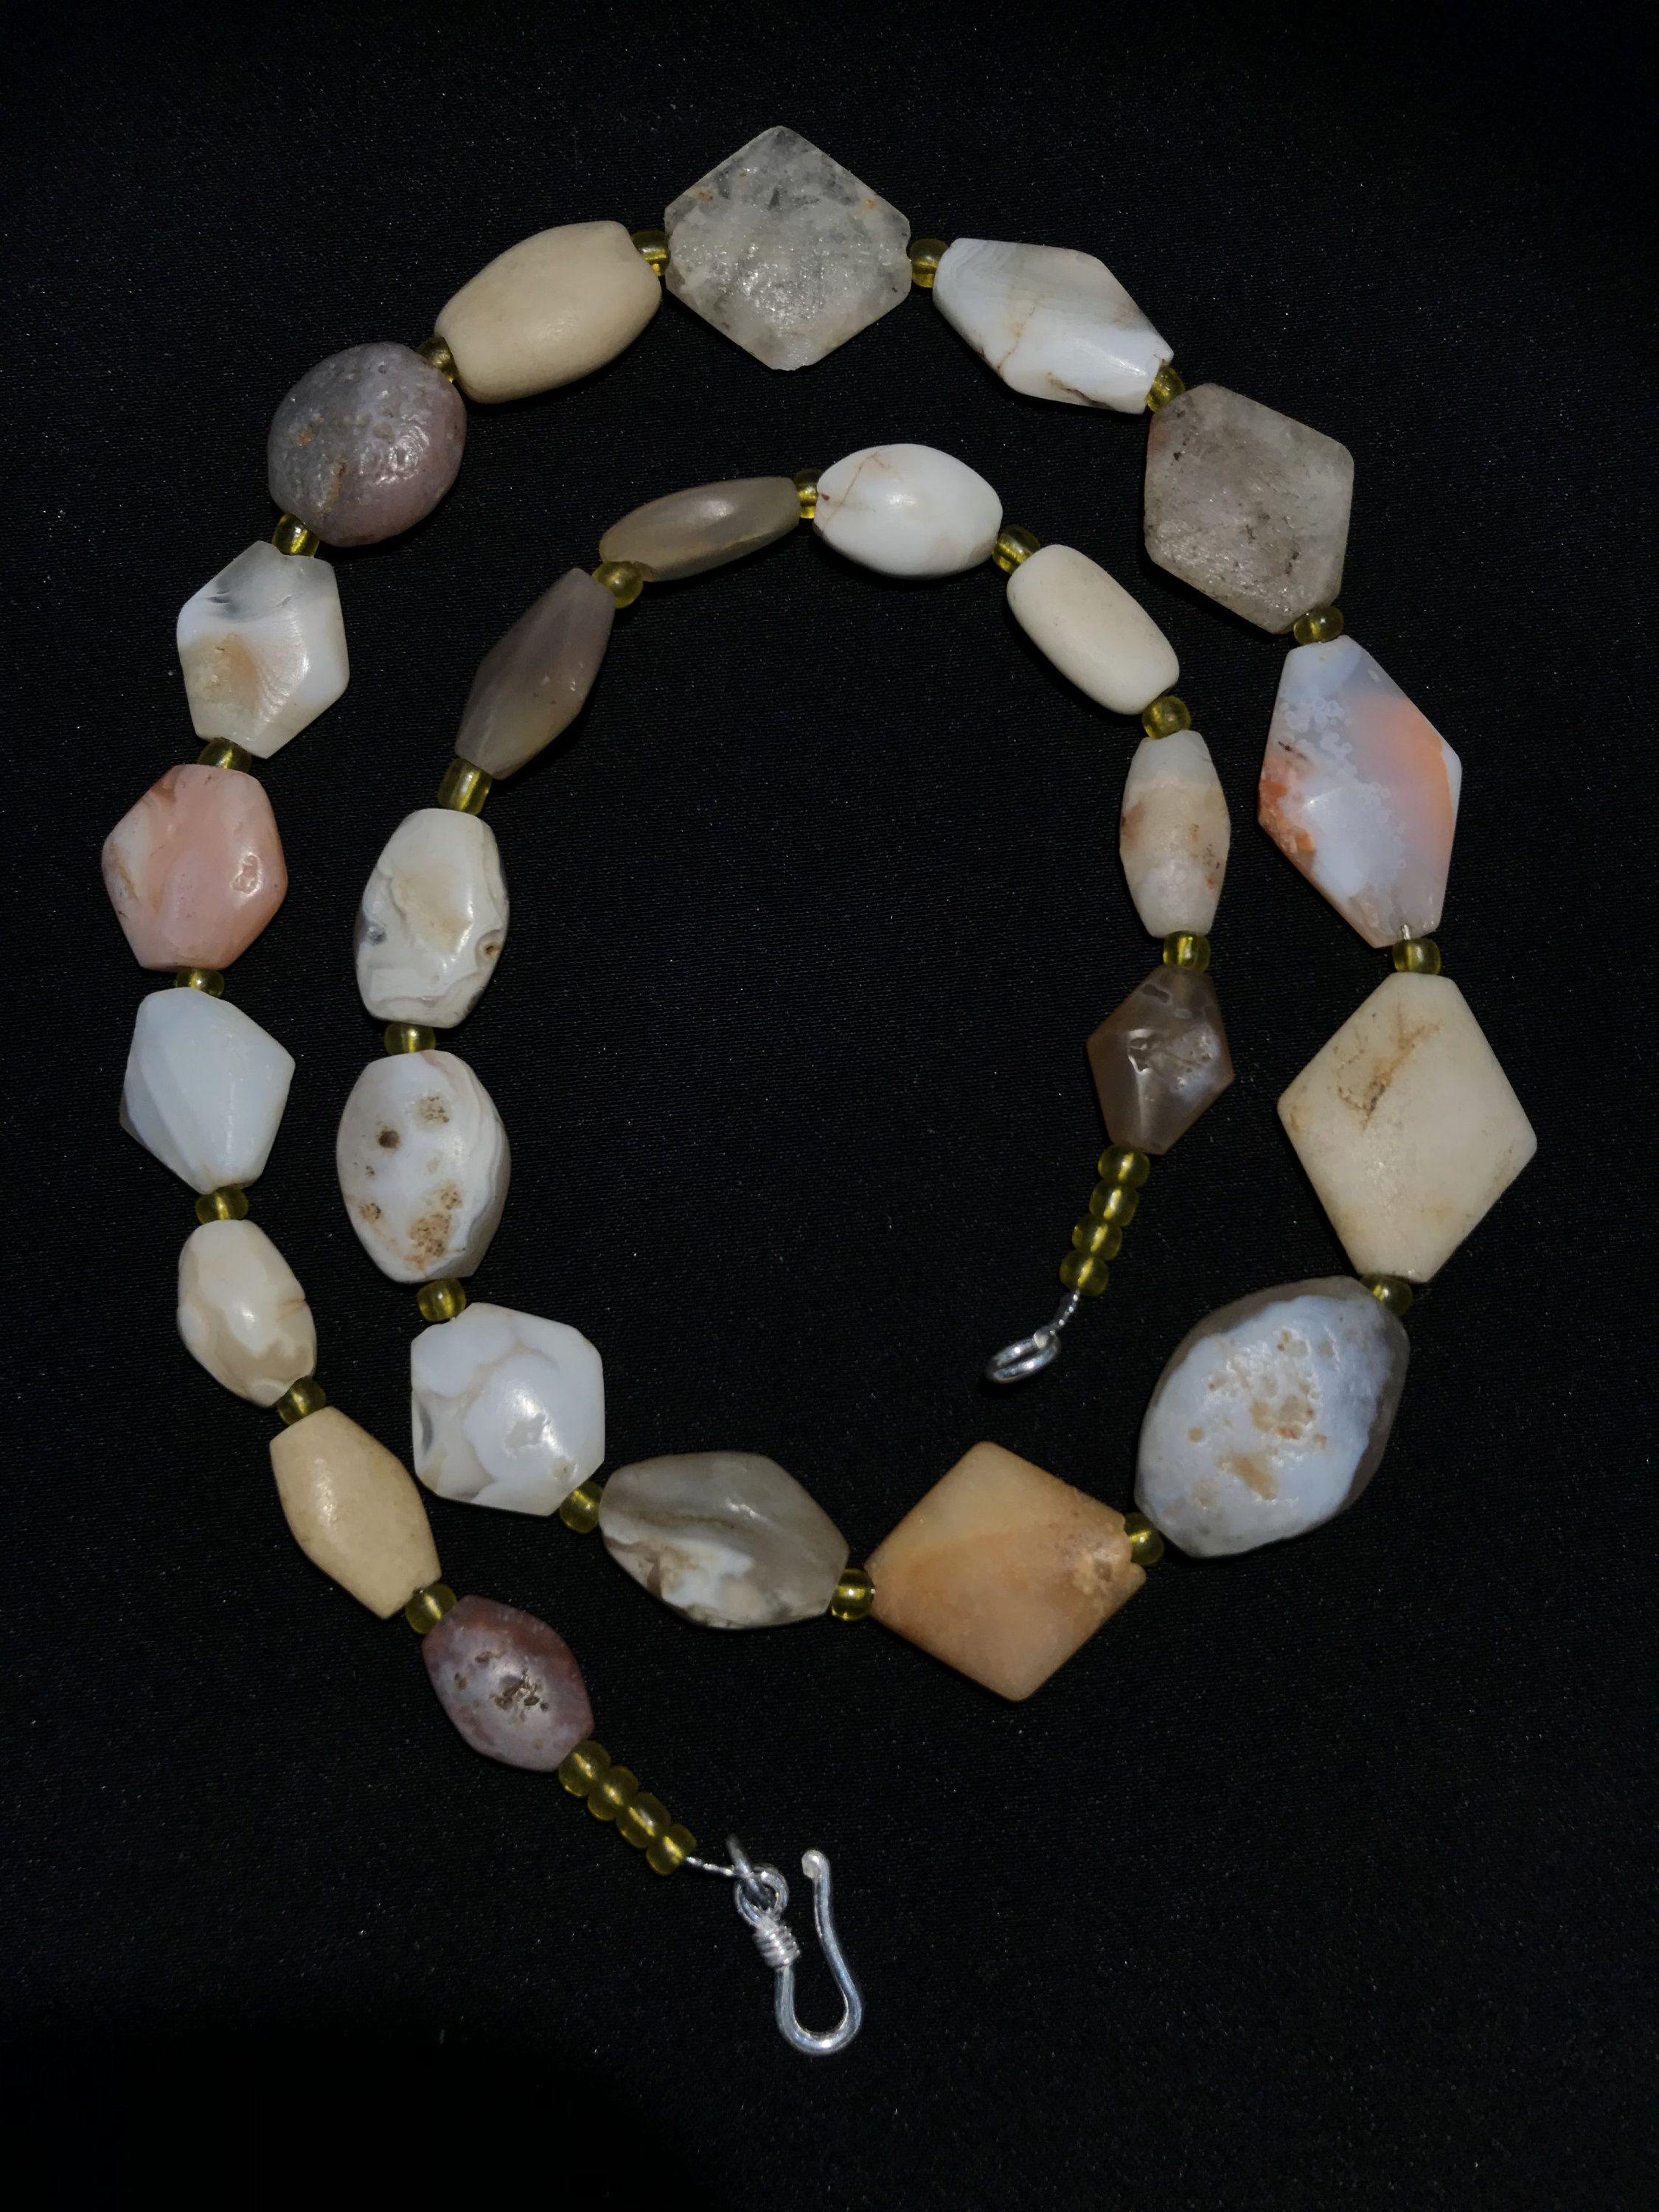 Antique agate beads etsy in 2020 agate beads crystal